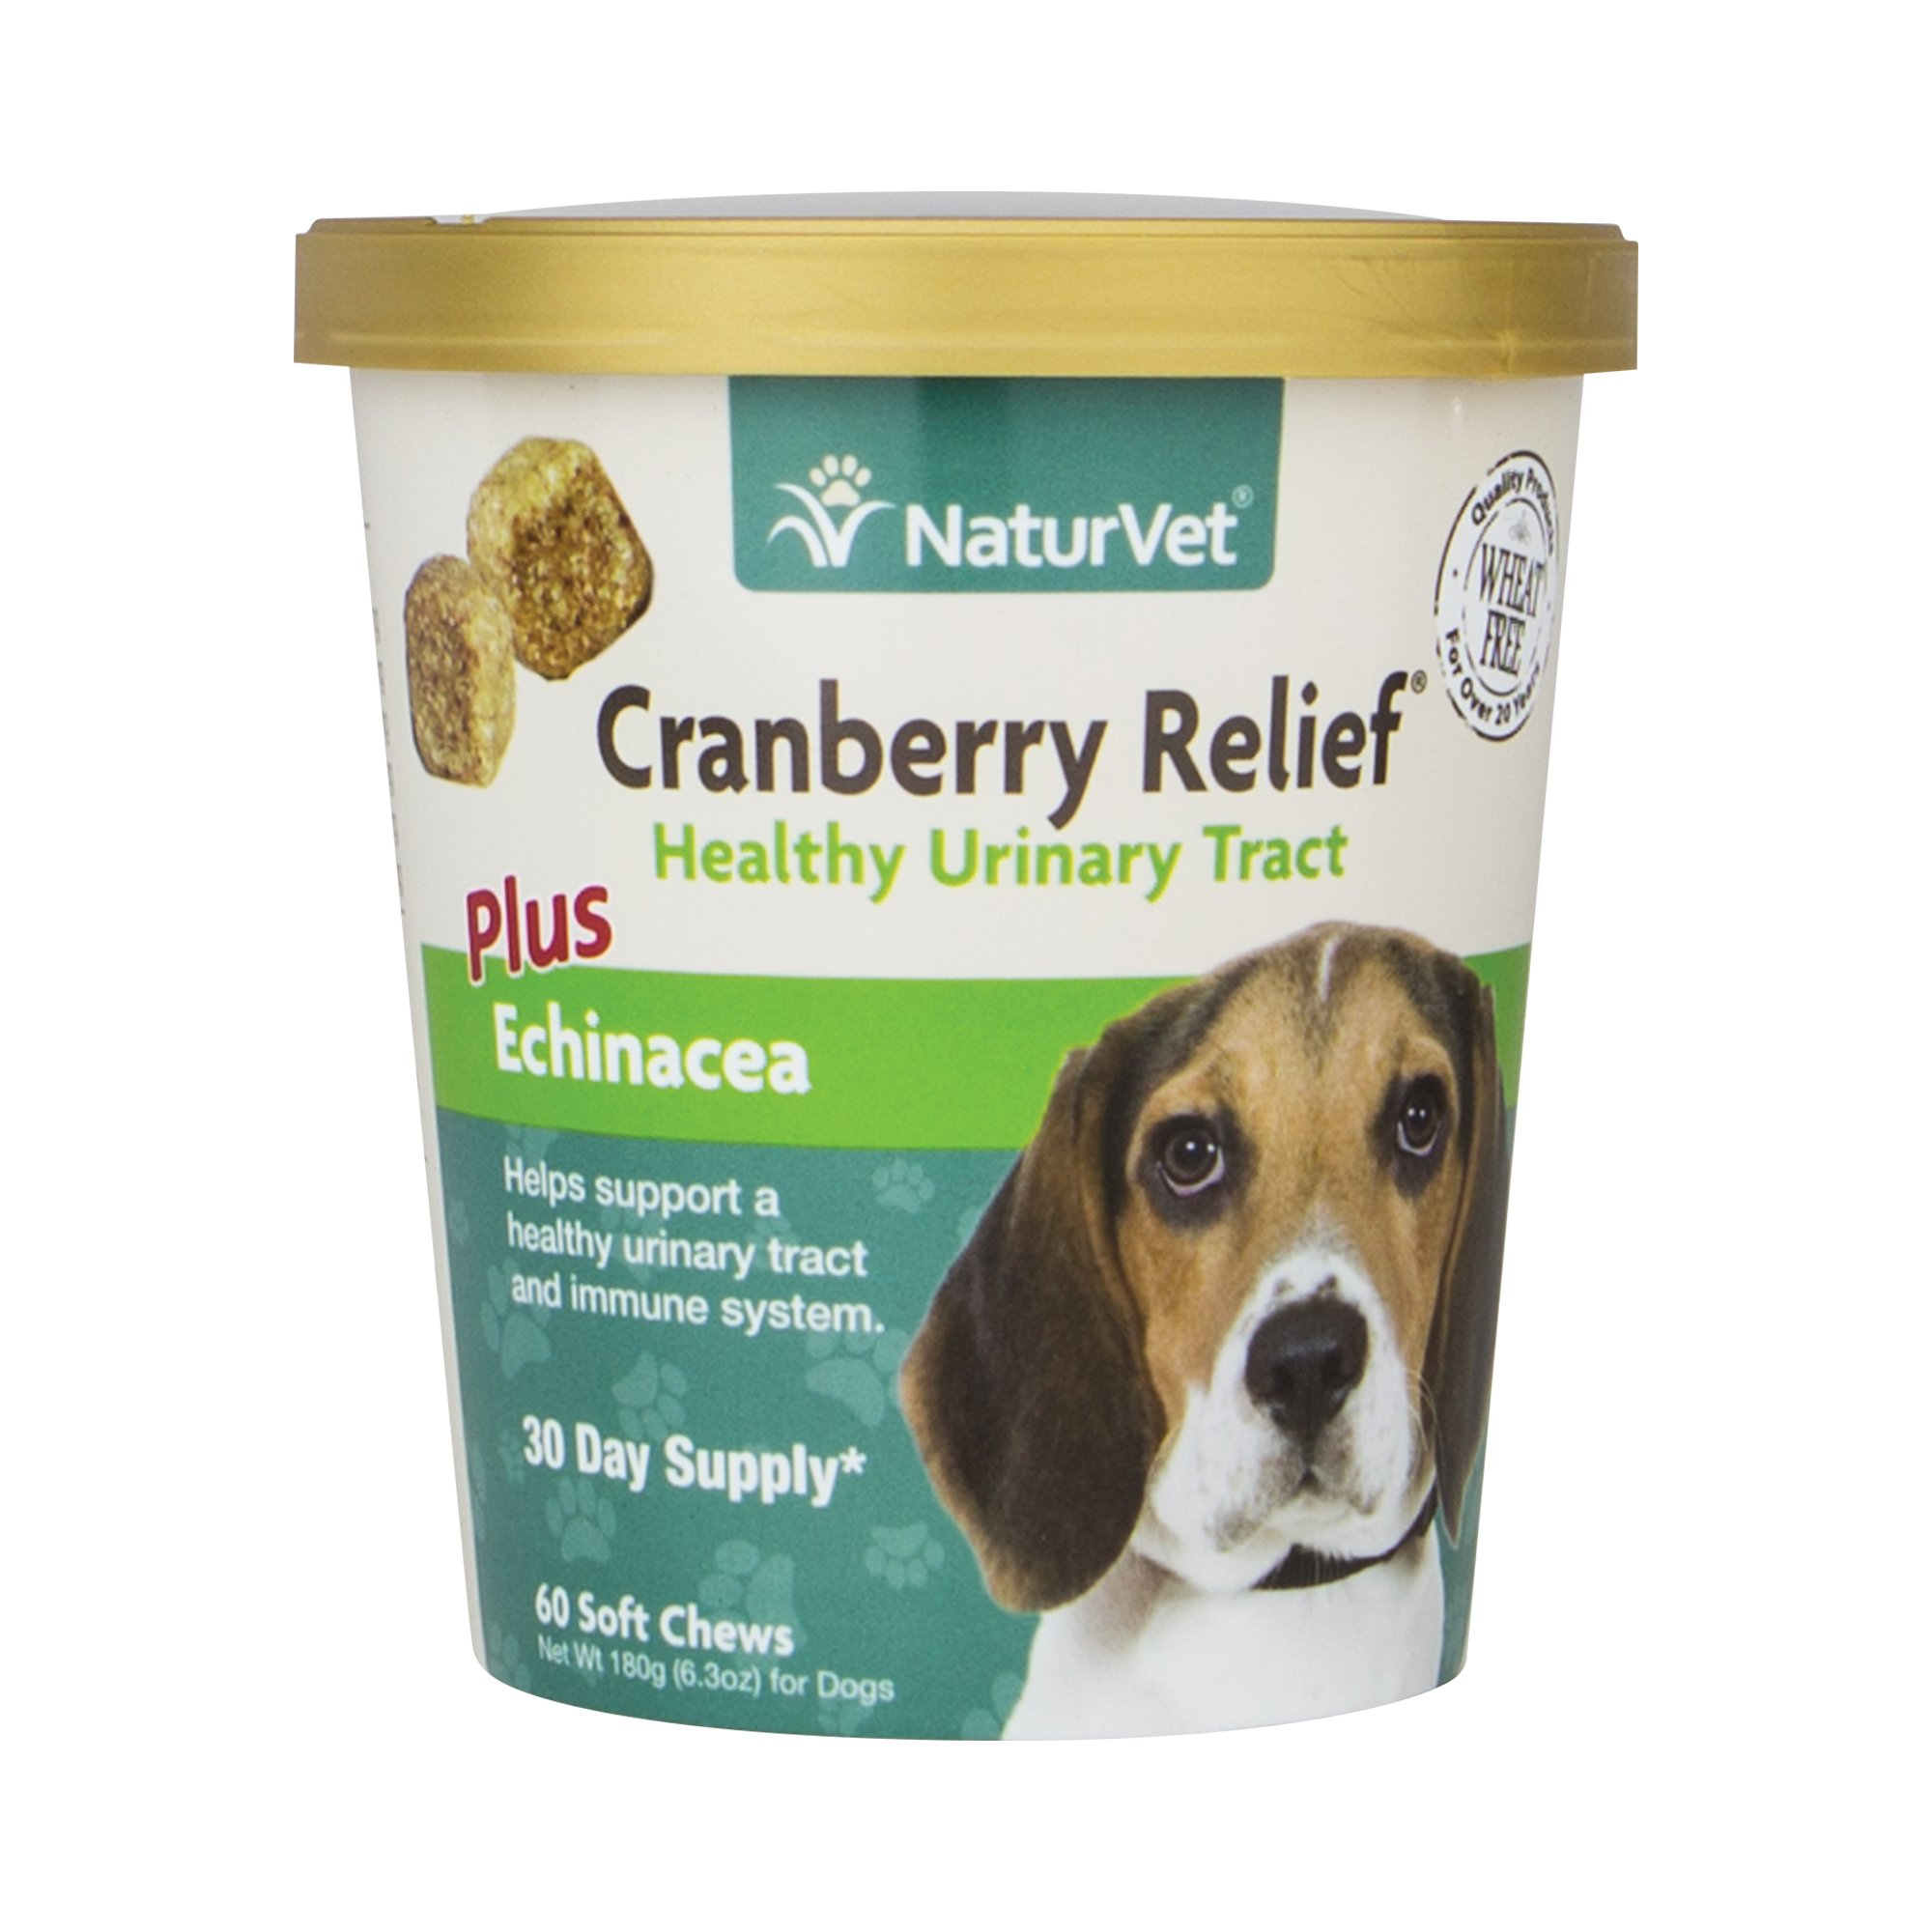 NaturVet Urinary Health Supplement Soft Chews for Dogs, Healthy Bladder & Urinary Tract Support with Cranberry & Echinacea, Made by NaturVet (Image #1)